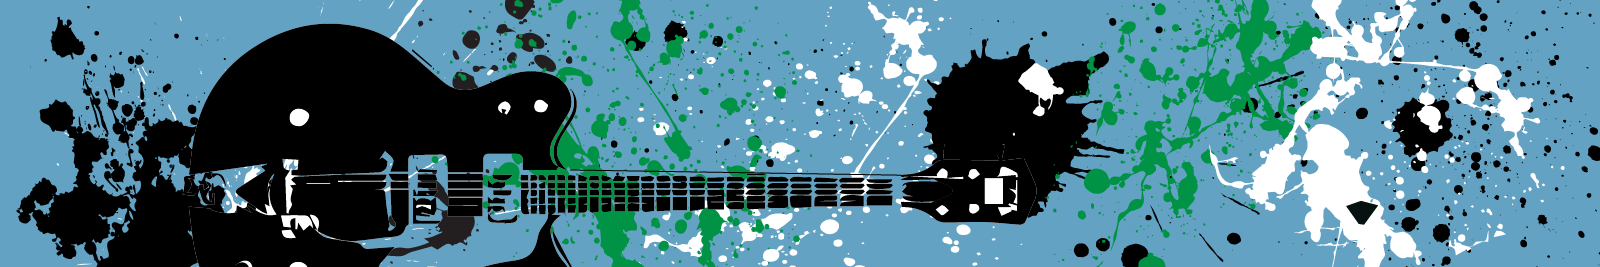 guitar paint splatter graphic stone roses